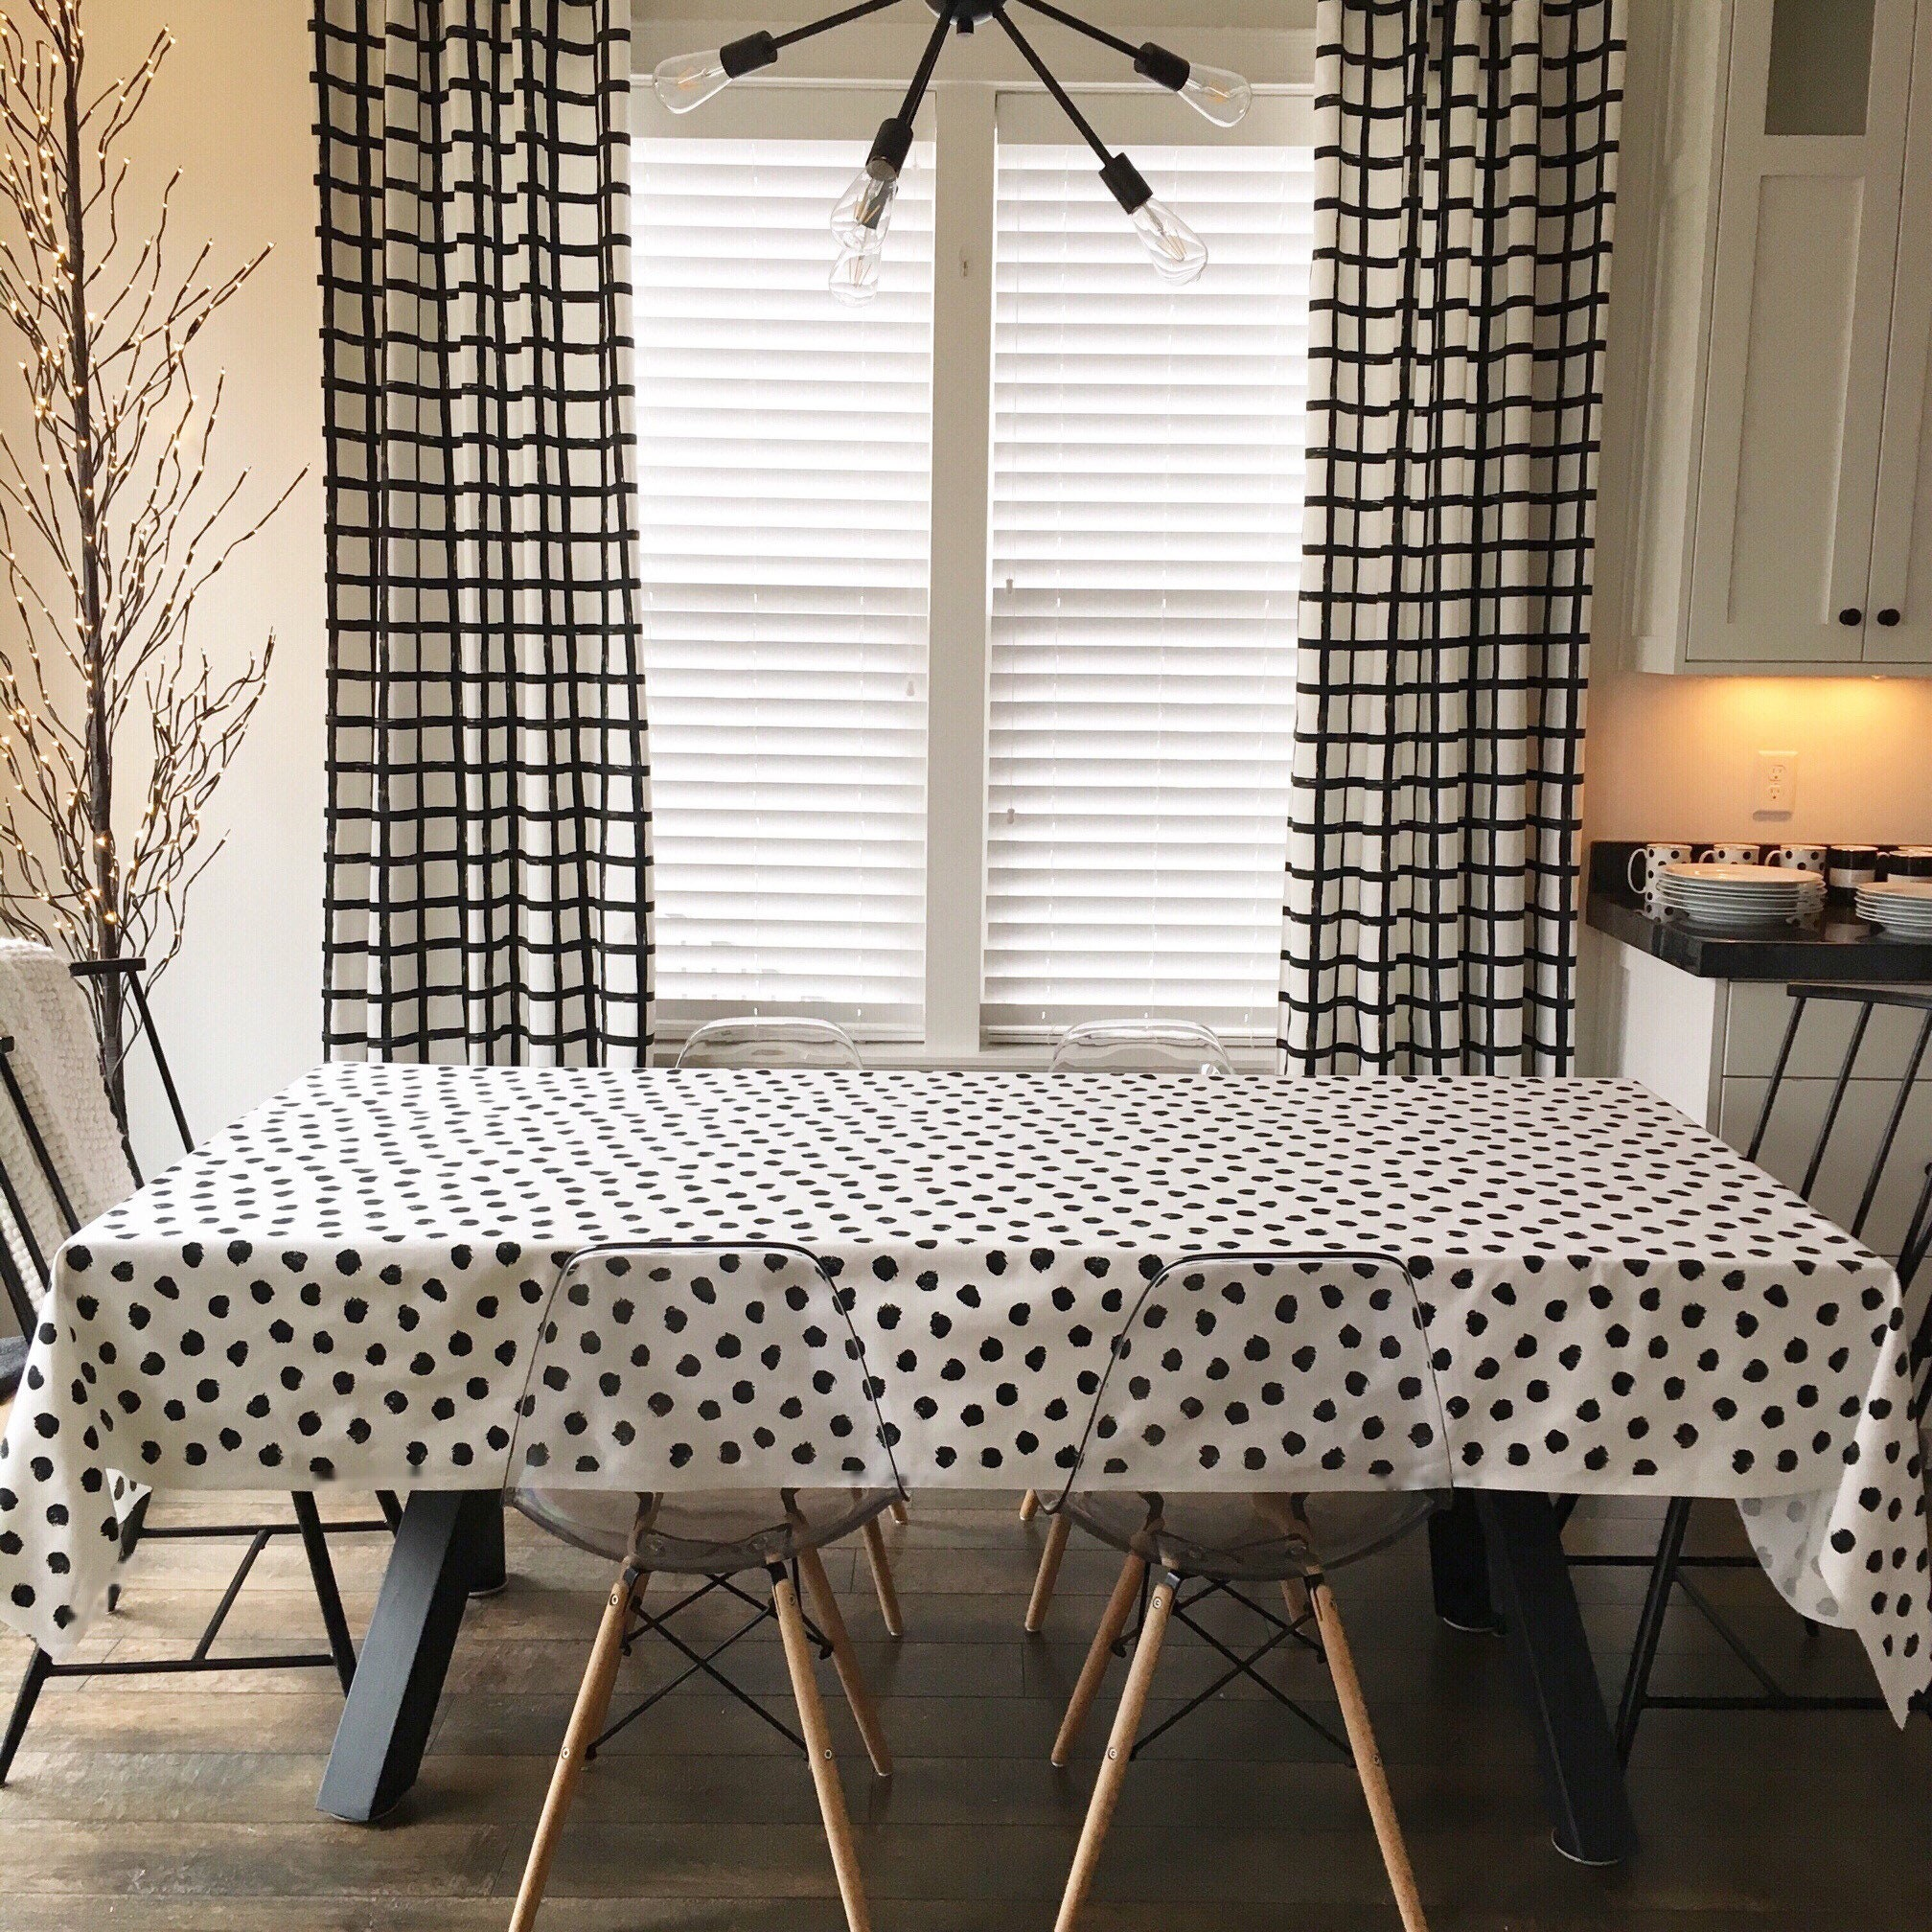 Polka Dot Tablecloth Black And White Tablecloth